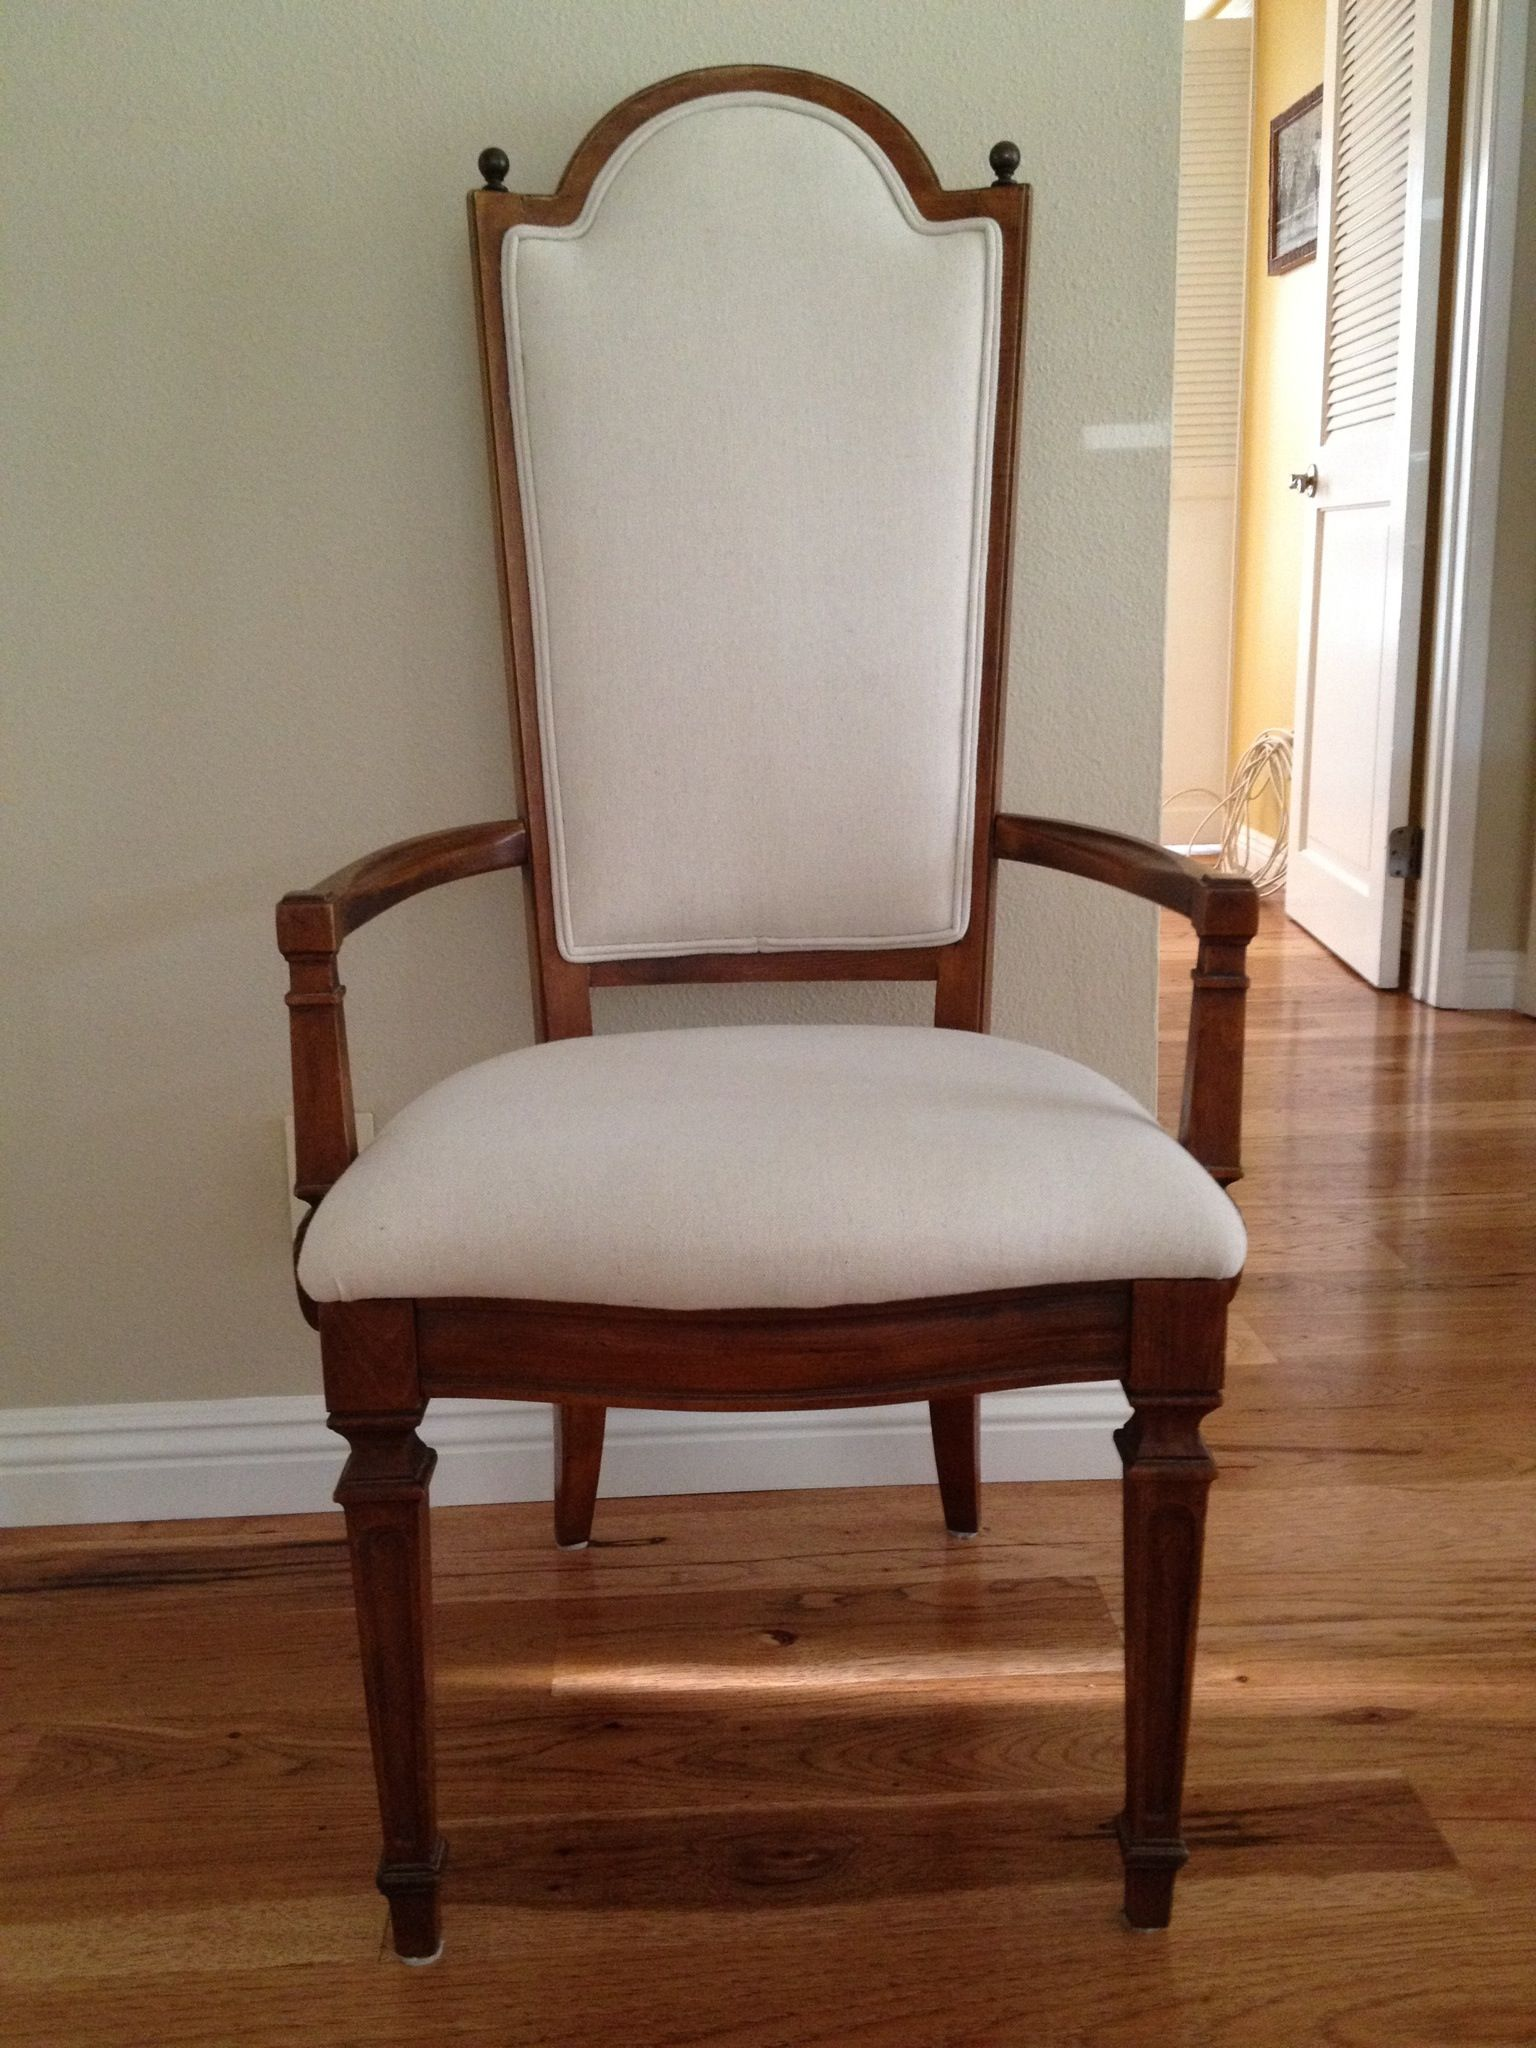 thomasville dining room chair that had torn cane back and worn out